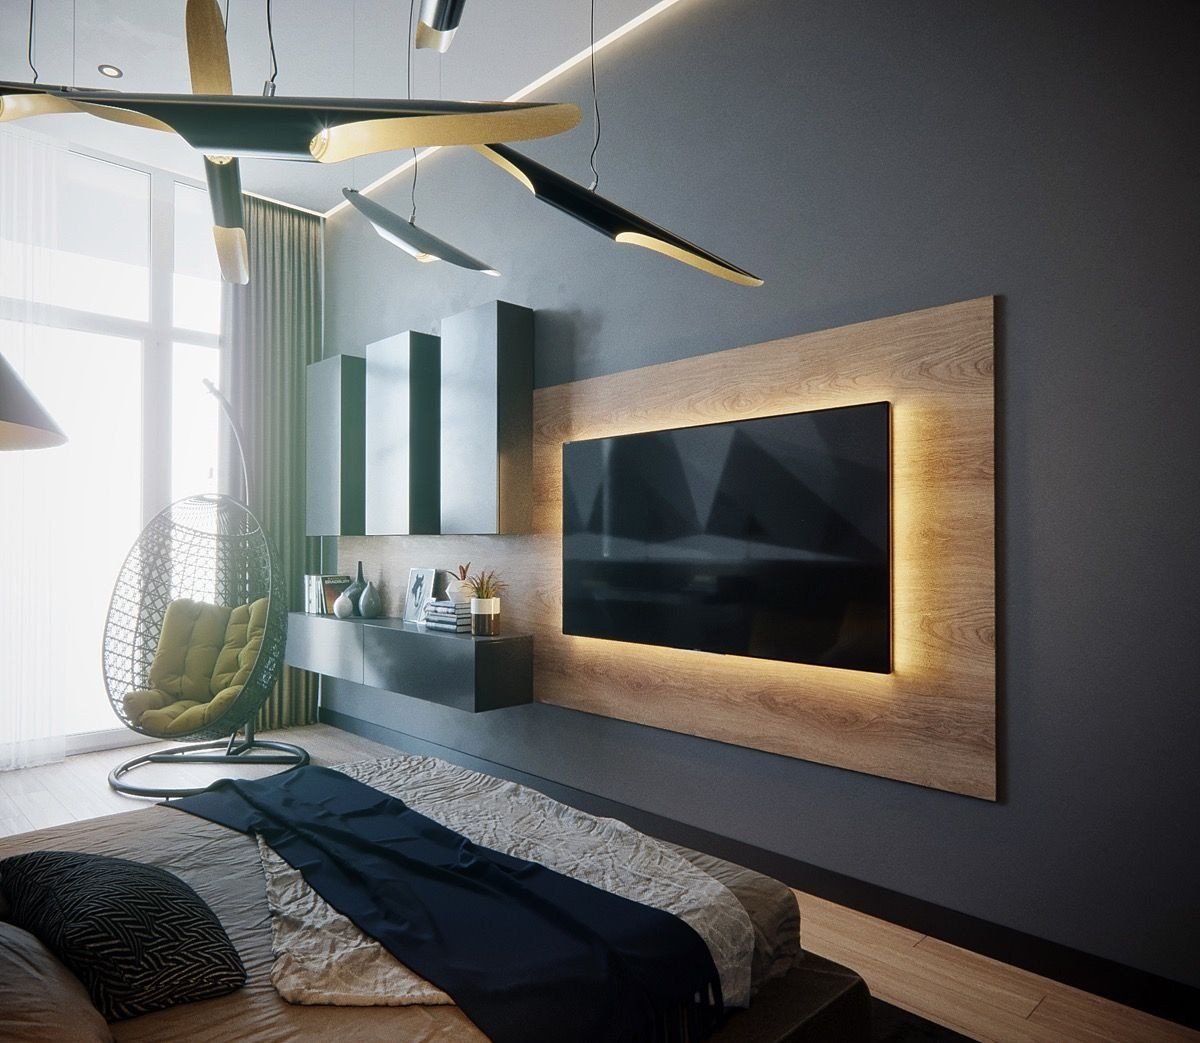 Wall Mounted Tv Ideas Bedroom New 50 Ideas to Decorate the Wall You Hang Your Tv